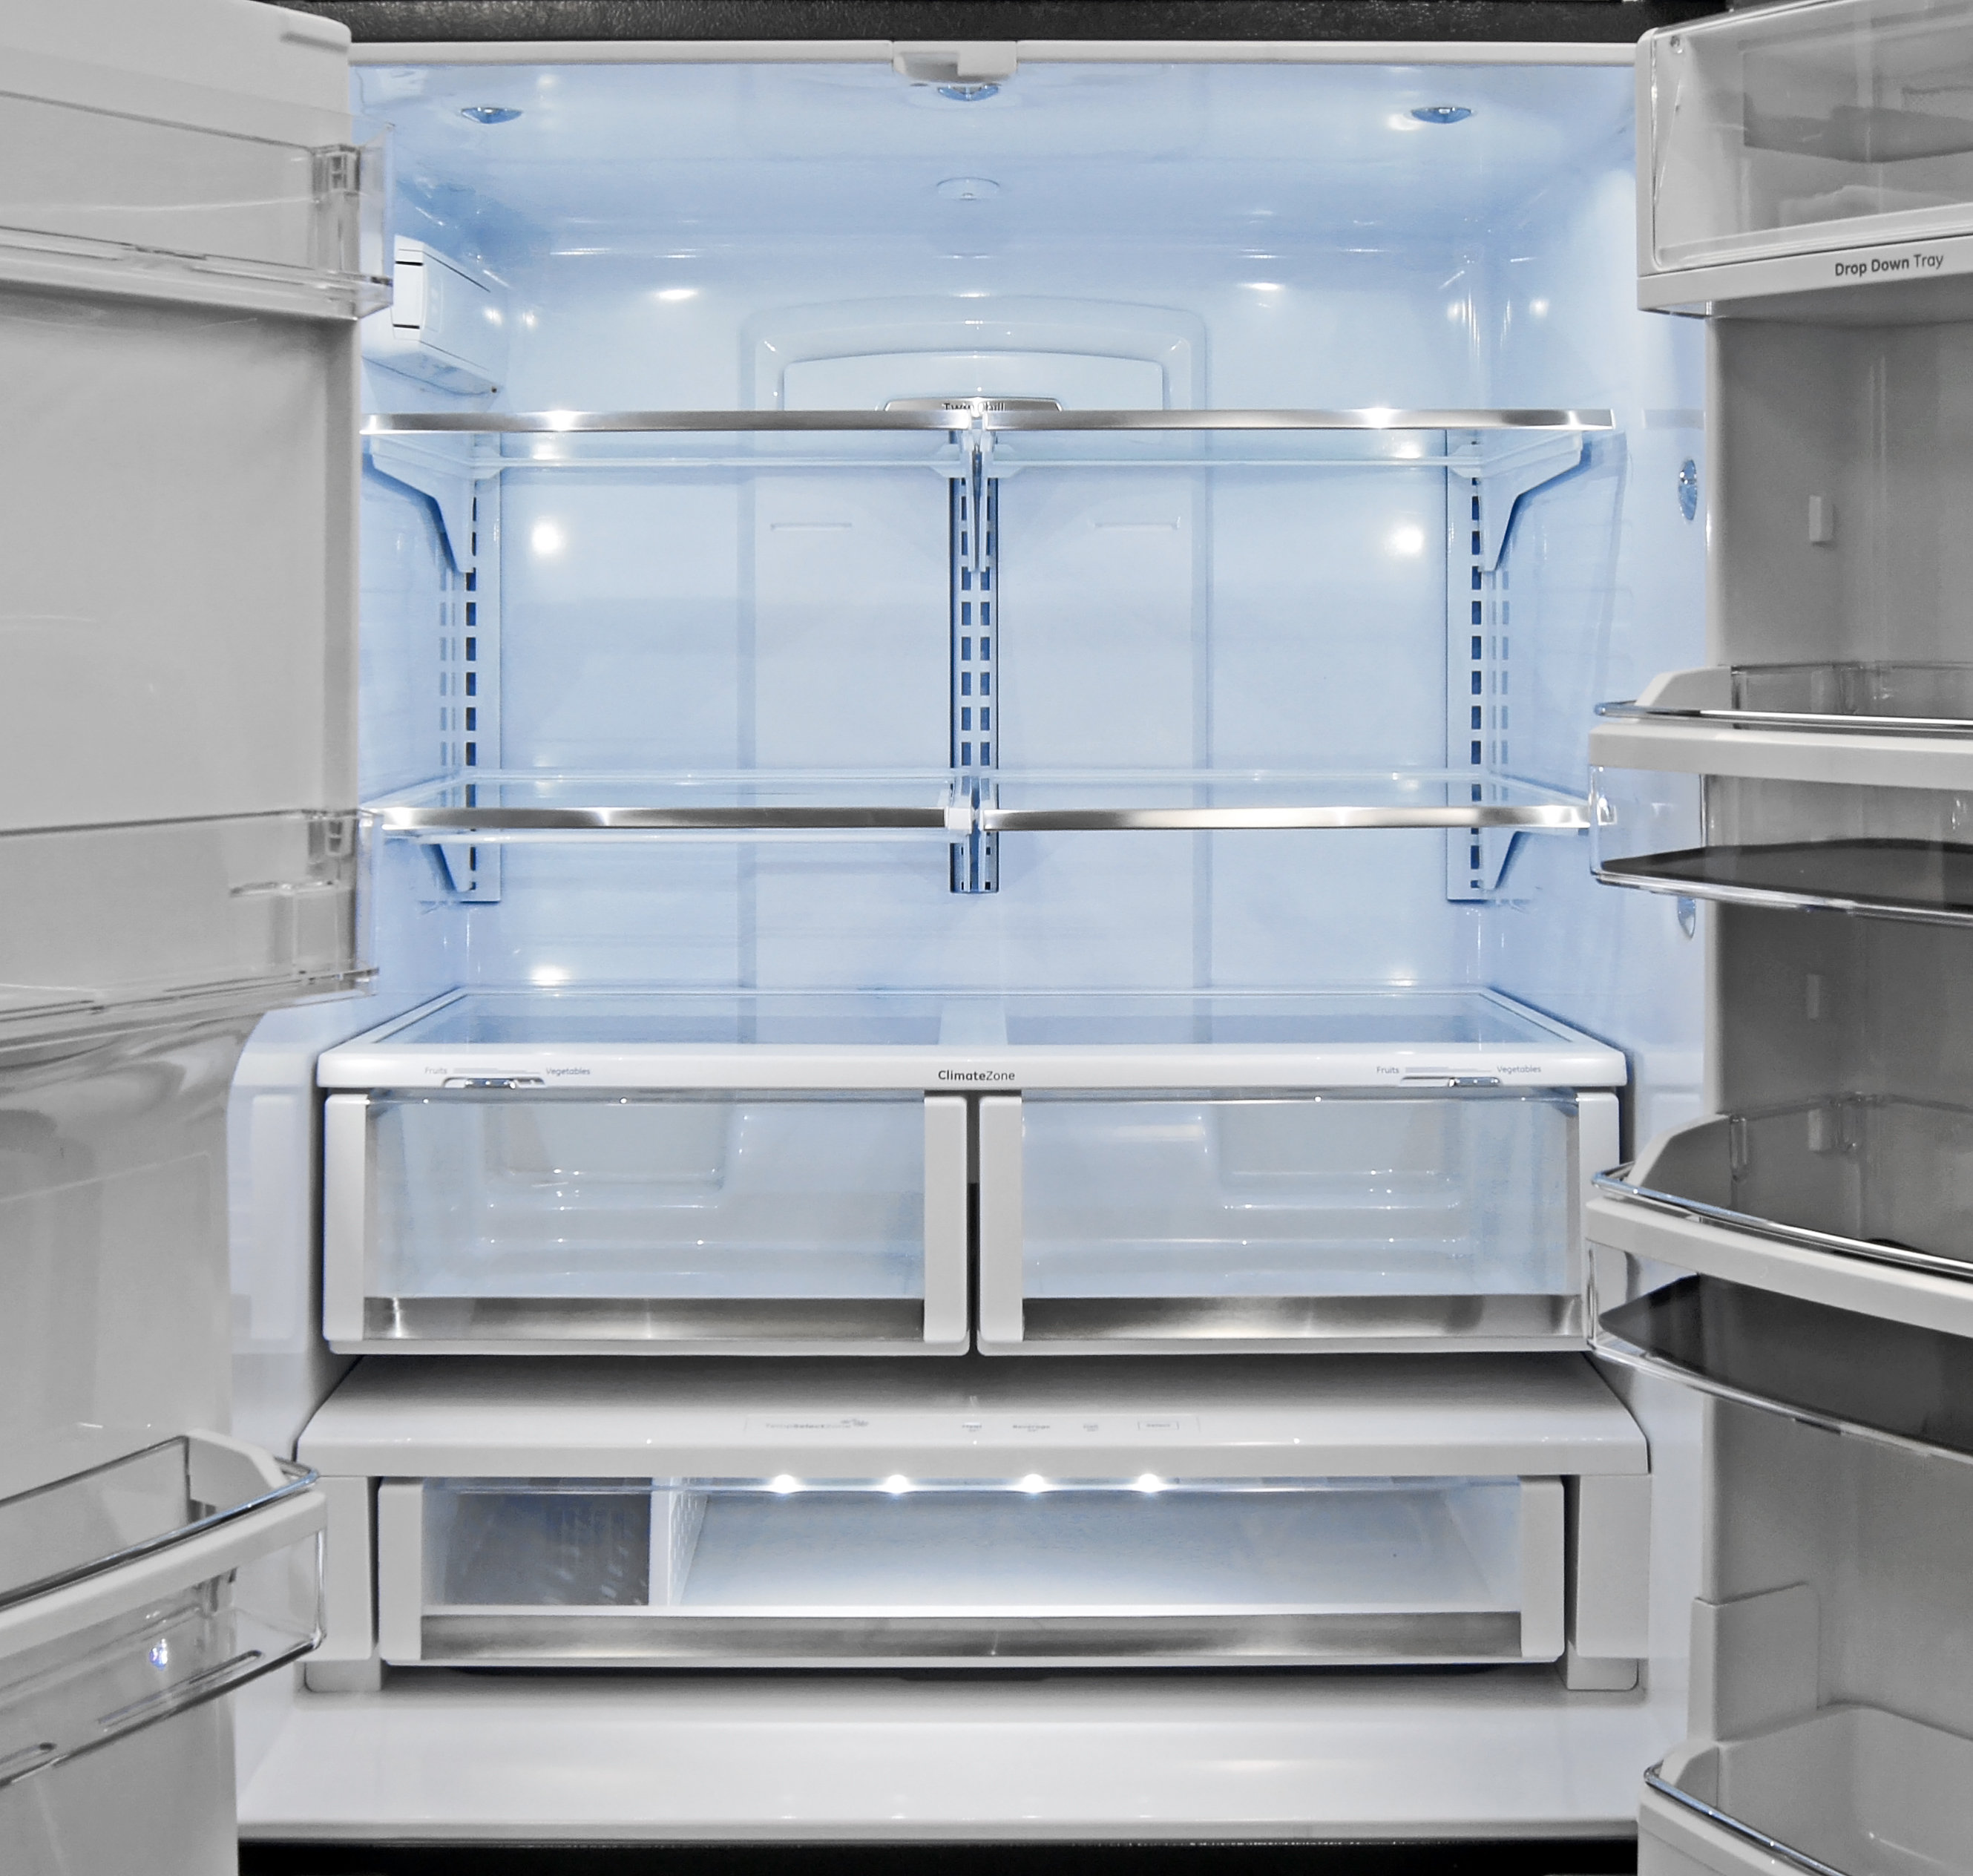 The GE Cafe CFE28TSHSS's fridge interior is well lit and highly accessible.